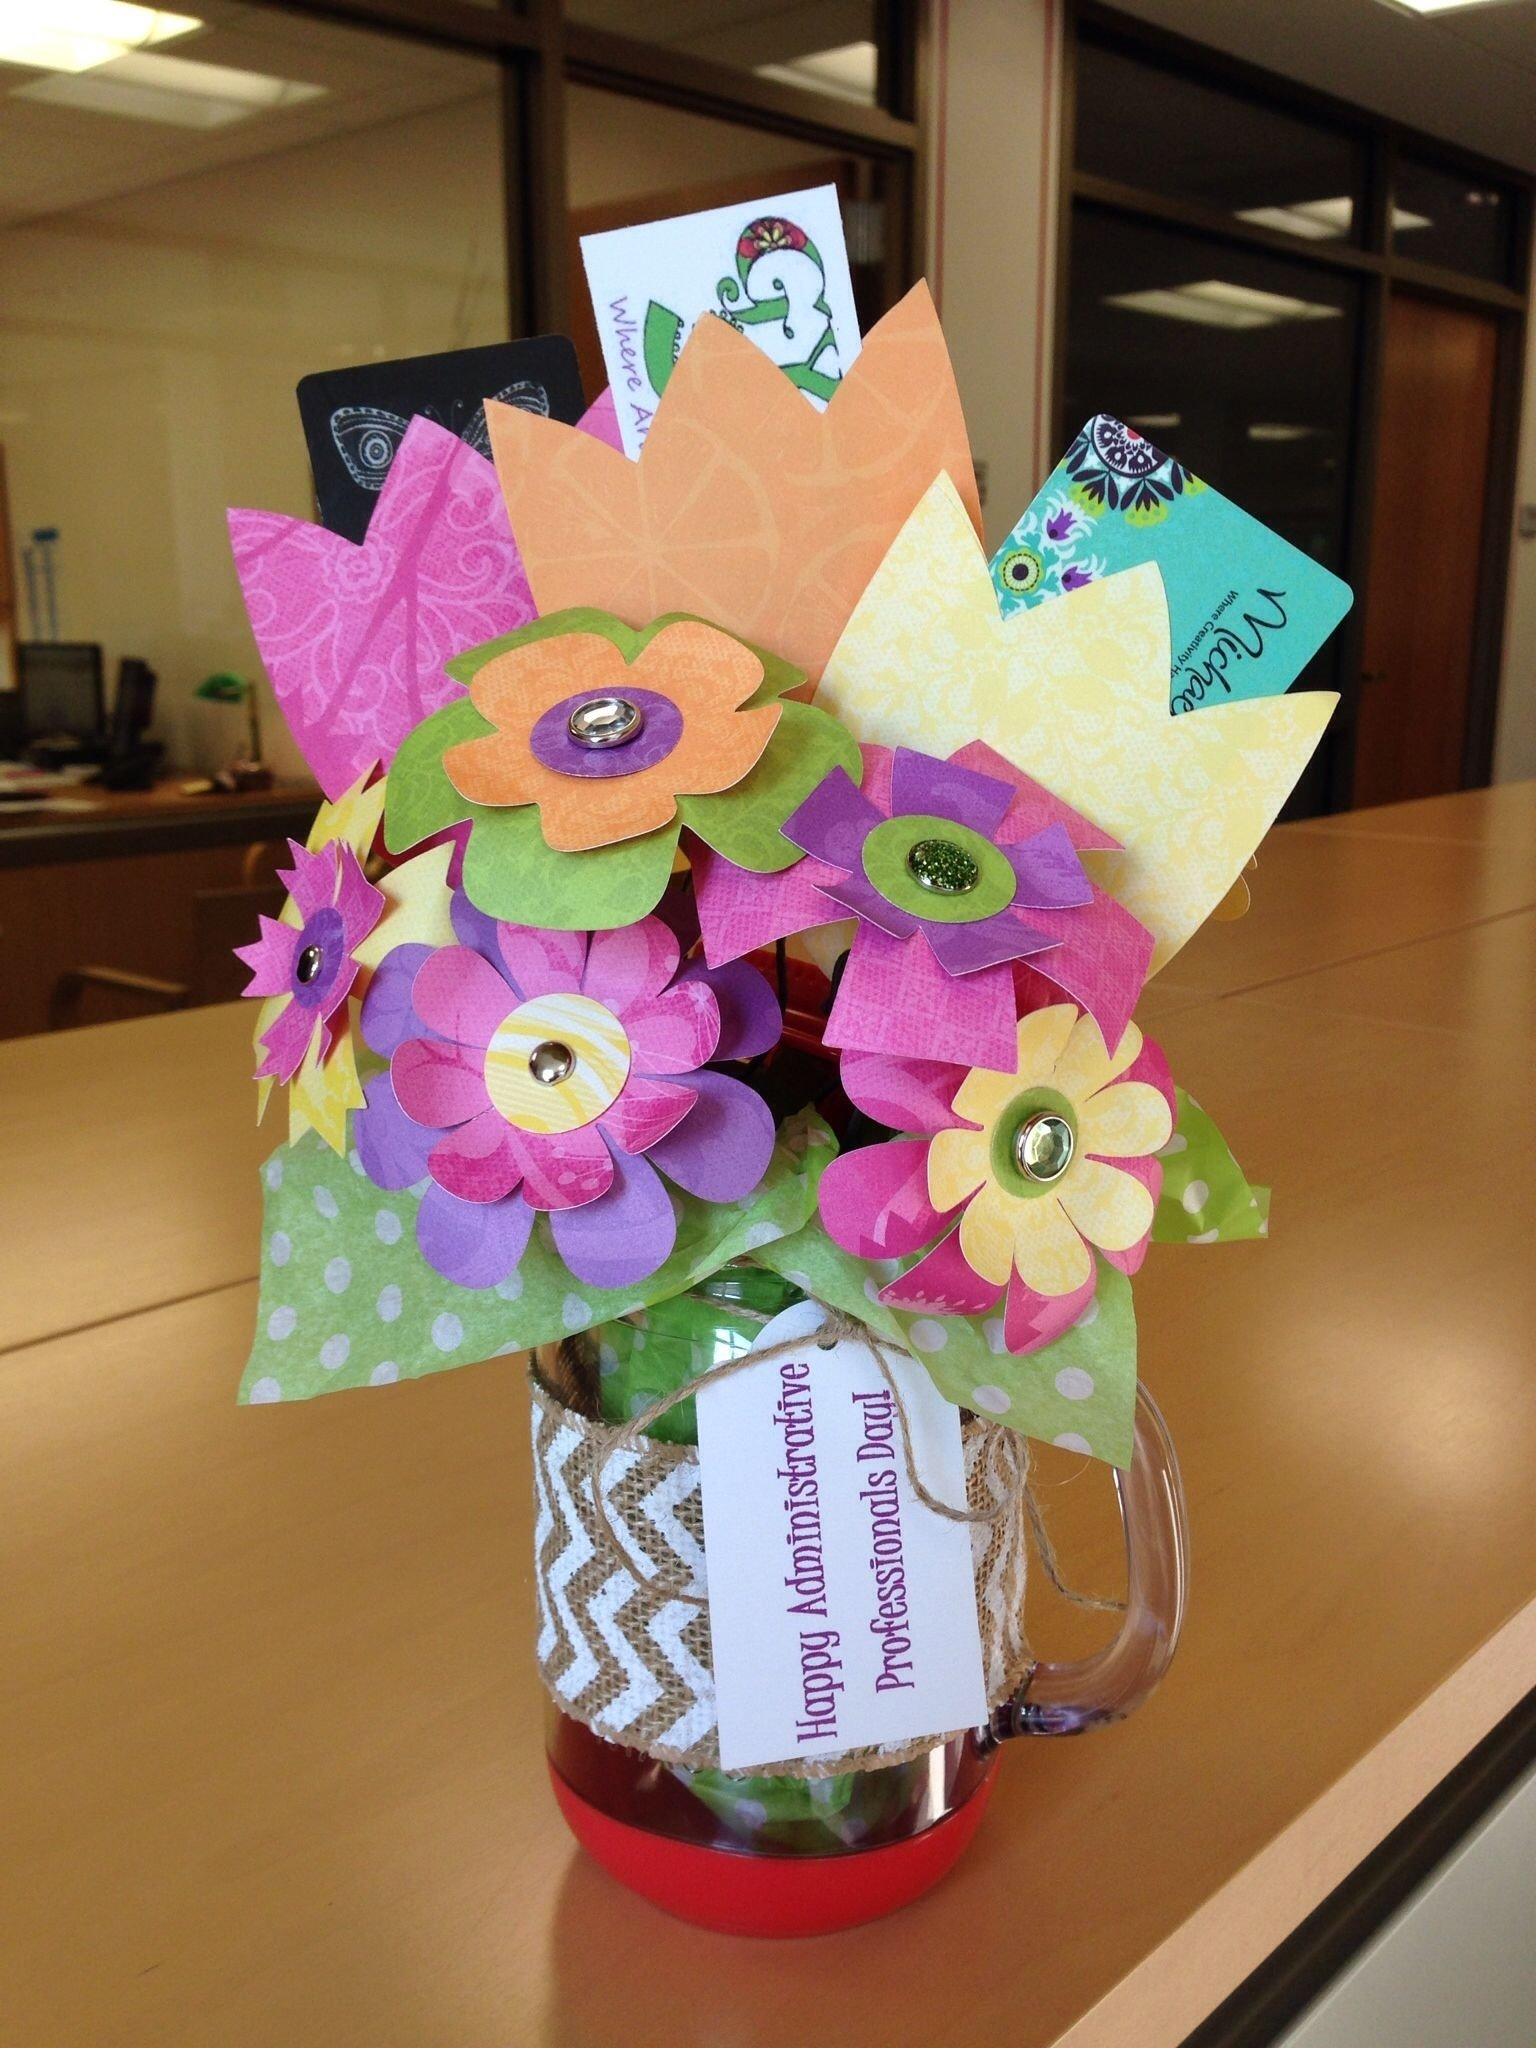 10 Famous Administrative Assistant Day Gift Ideas gift card bouquet for administrative professionals day would be 2020